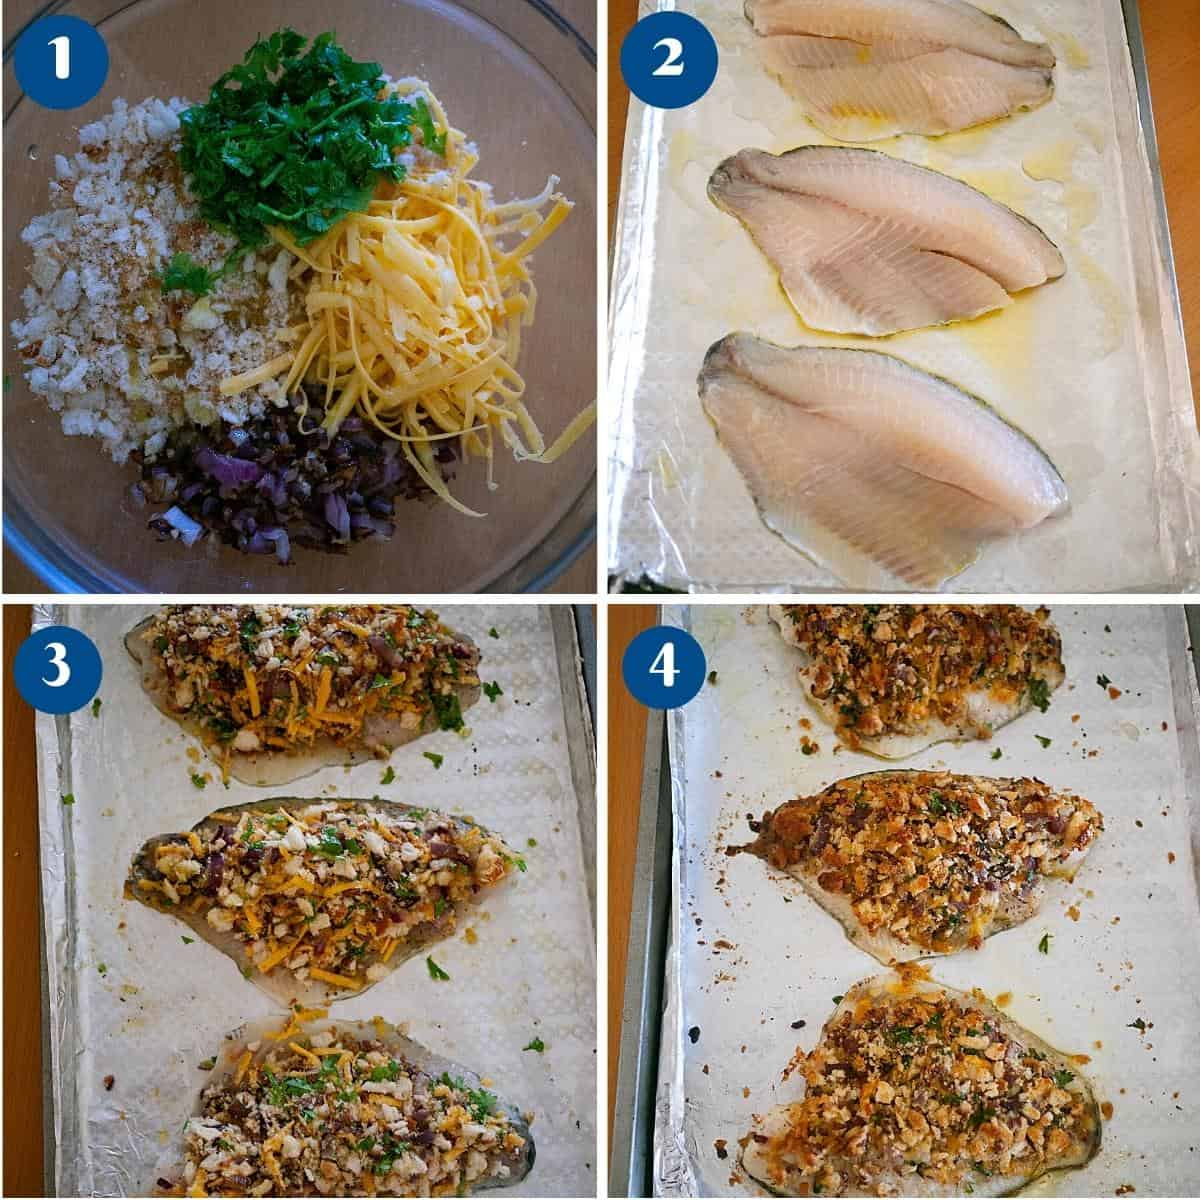 Progress pictures for baking the fish fillets with breadcrumbs.